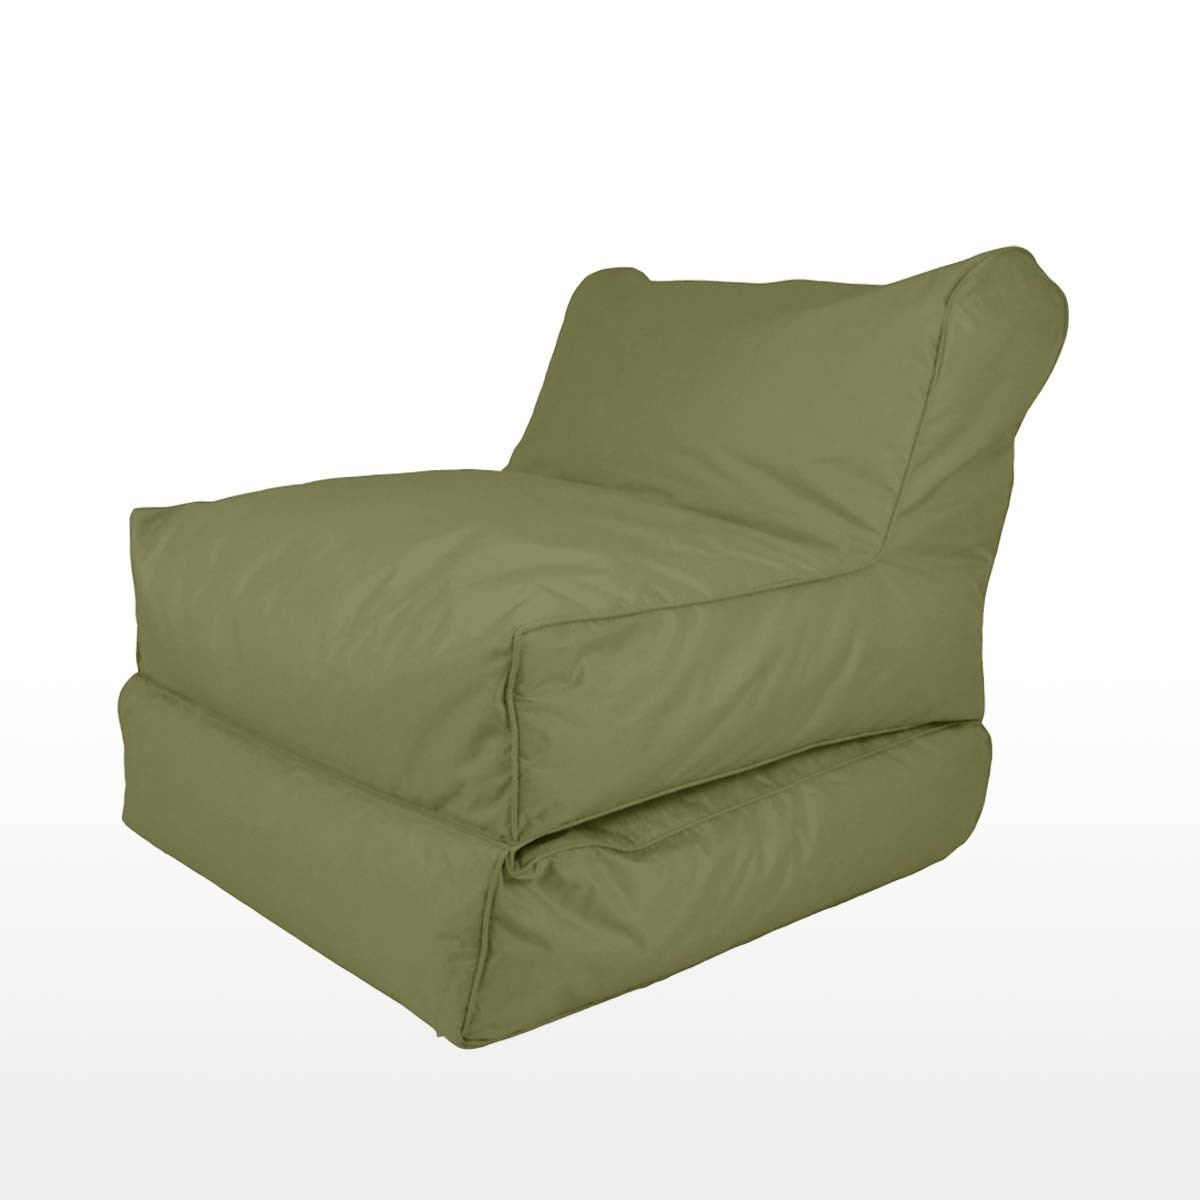 bean bag chair bed yoga certification nj sofa beds uk manufactured